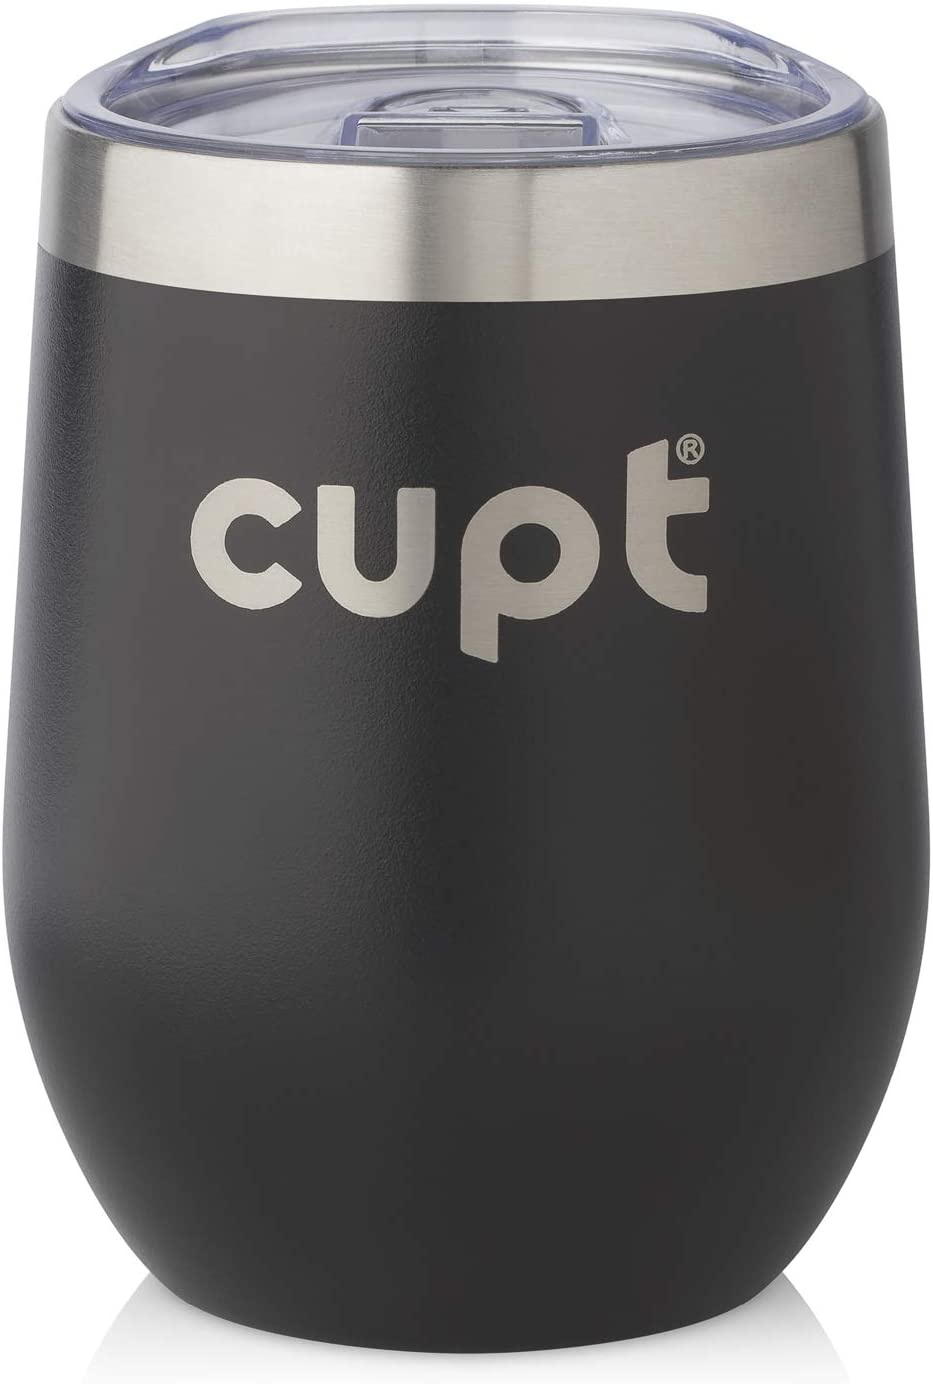 Stainless Steel Vacuum Insulated Thermal Cup Eco Friendly 12Oz Coffee Travel Mug Multipurpose Travel Cup for Coffee and Tea Cupt Reusable Coffee Cup Ideal for School Office Car - Black